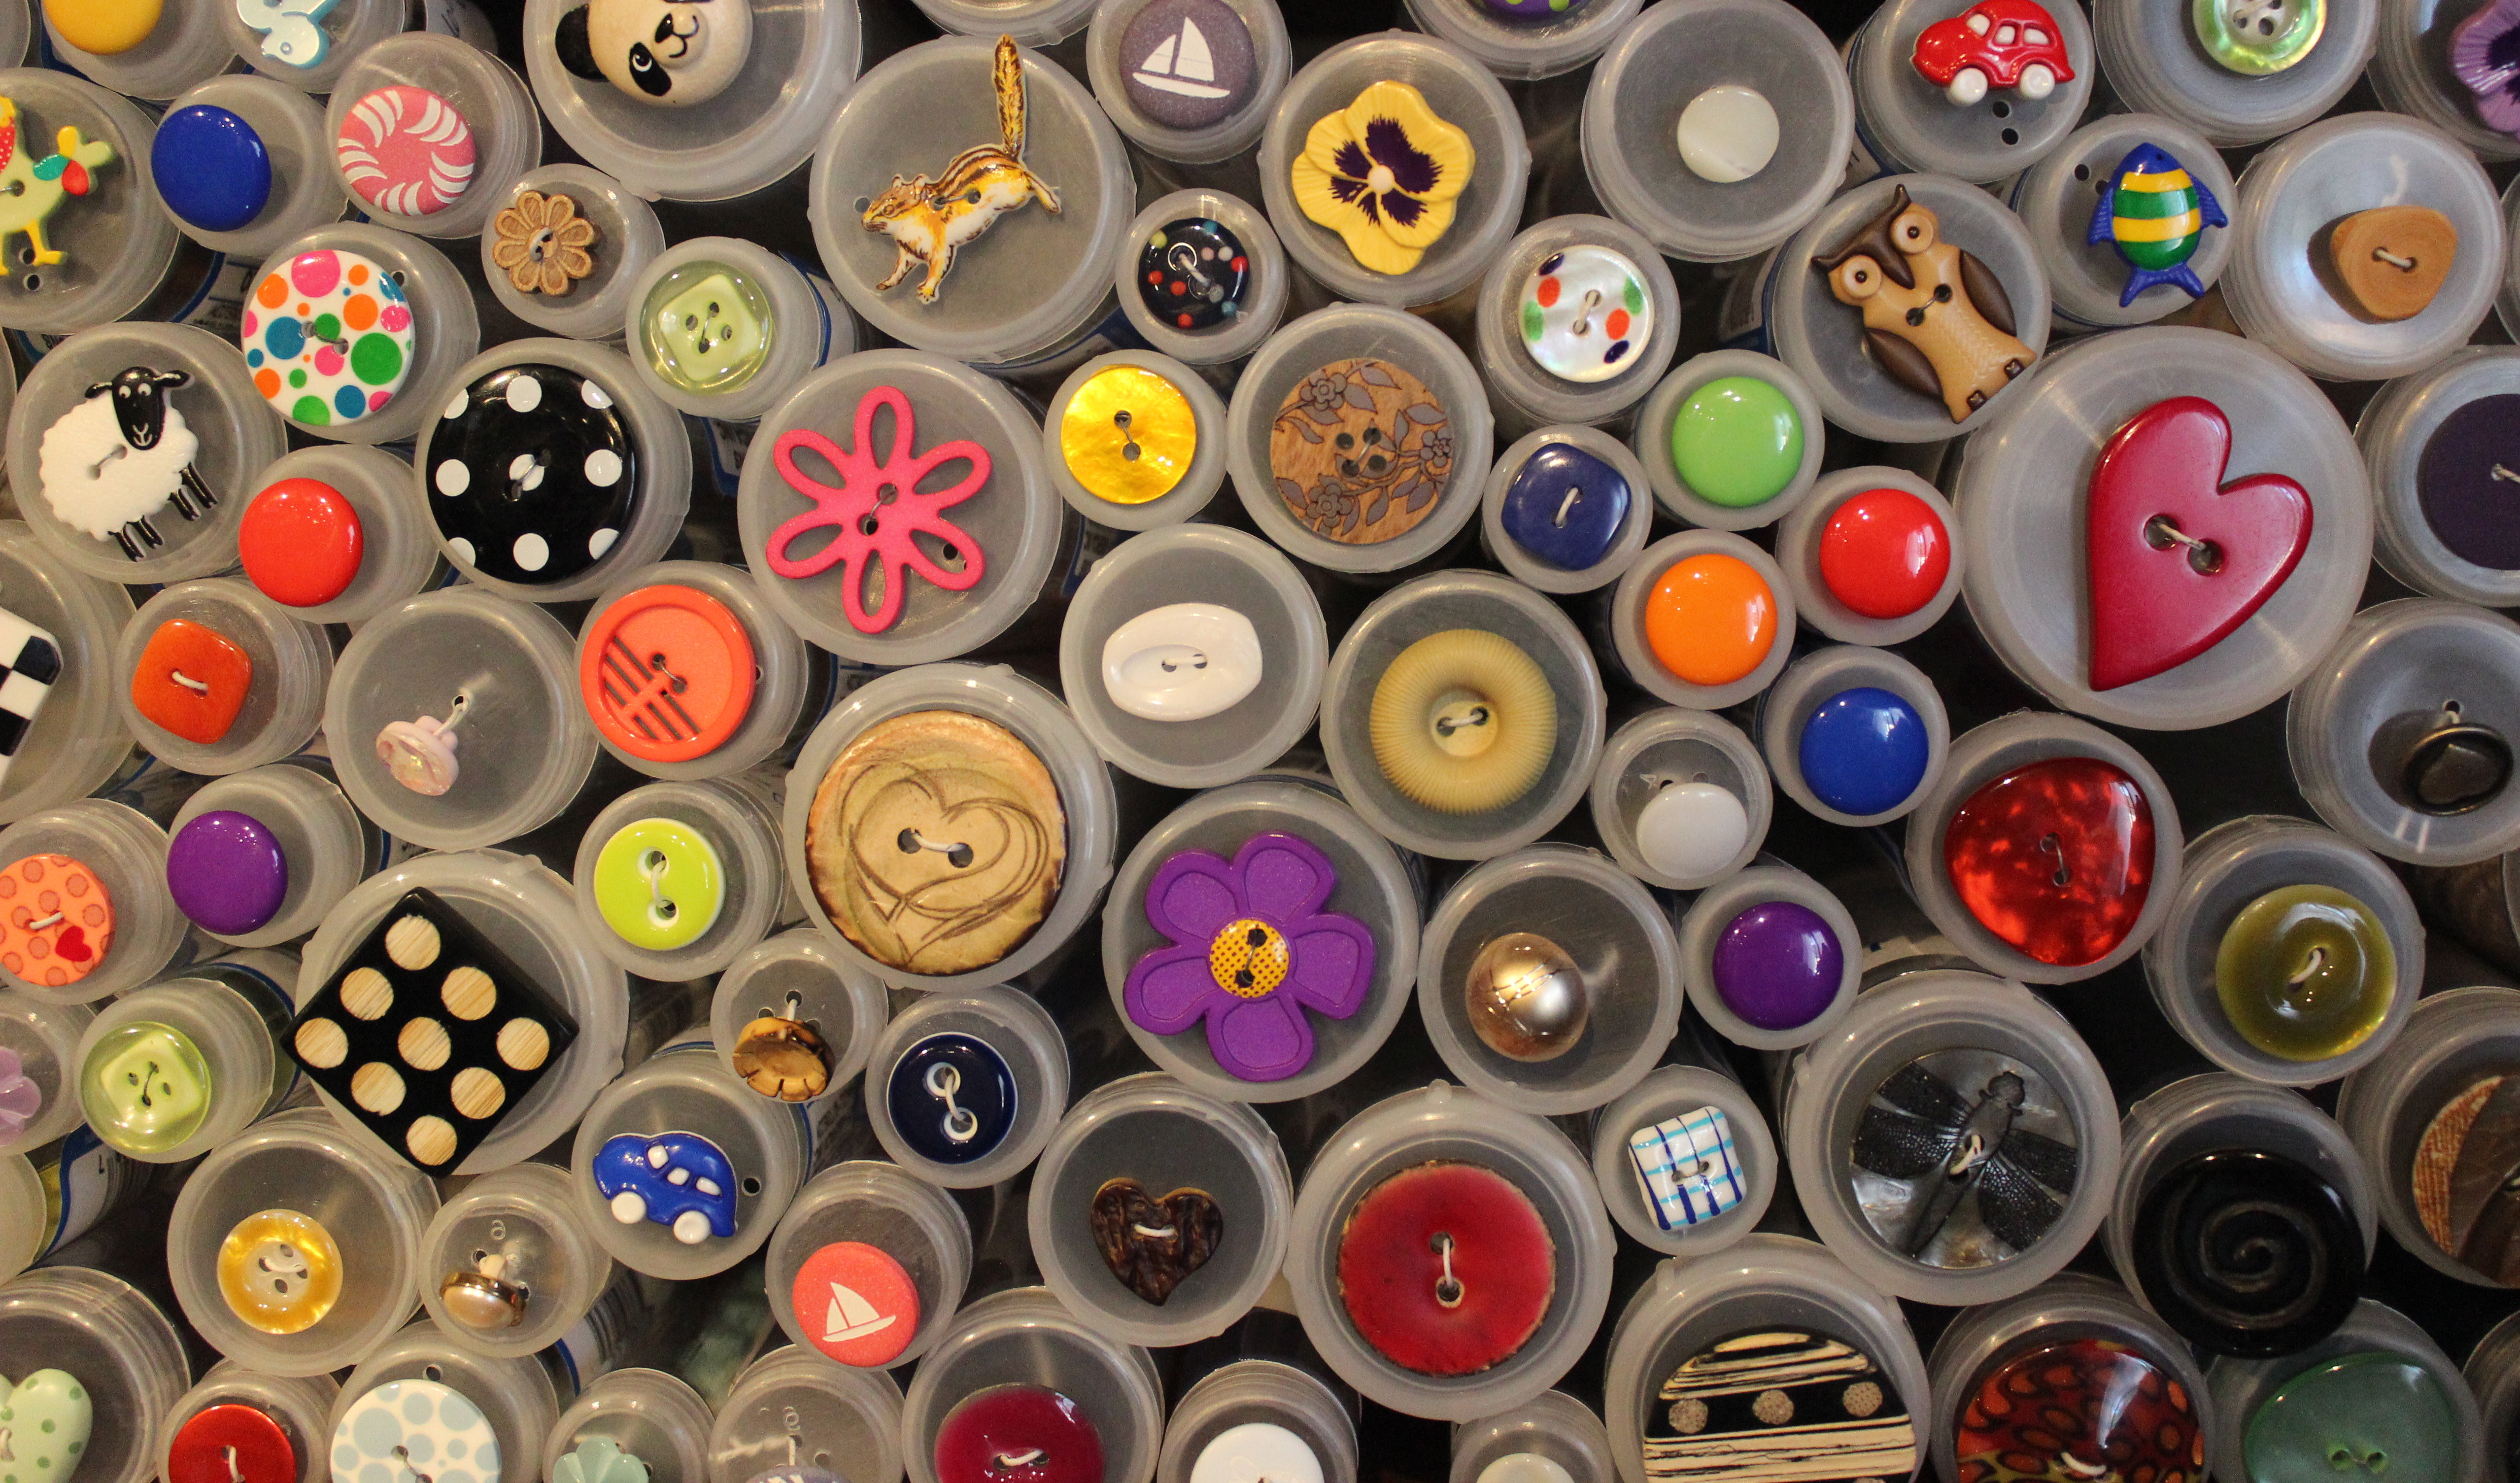 lots of buttons!